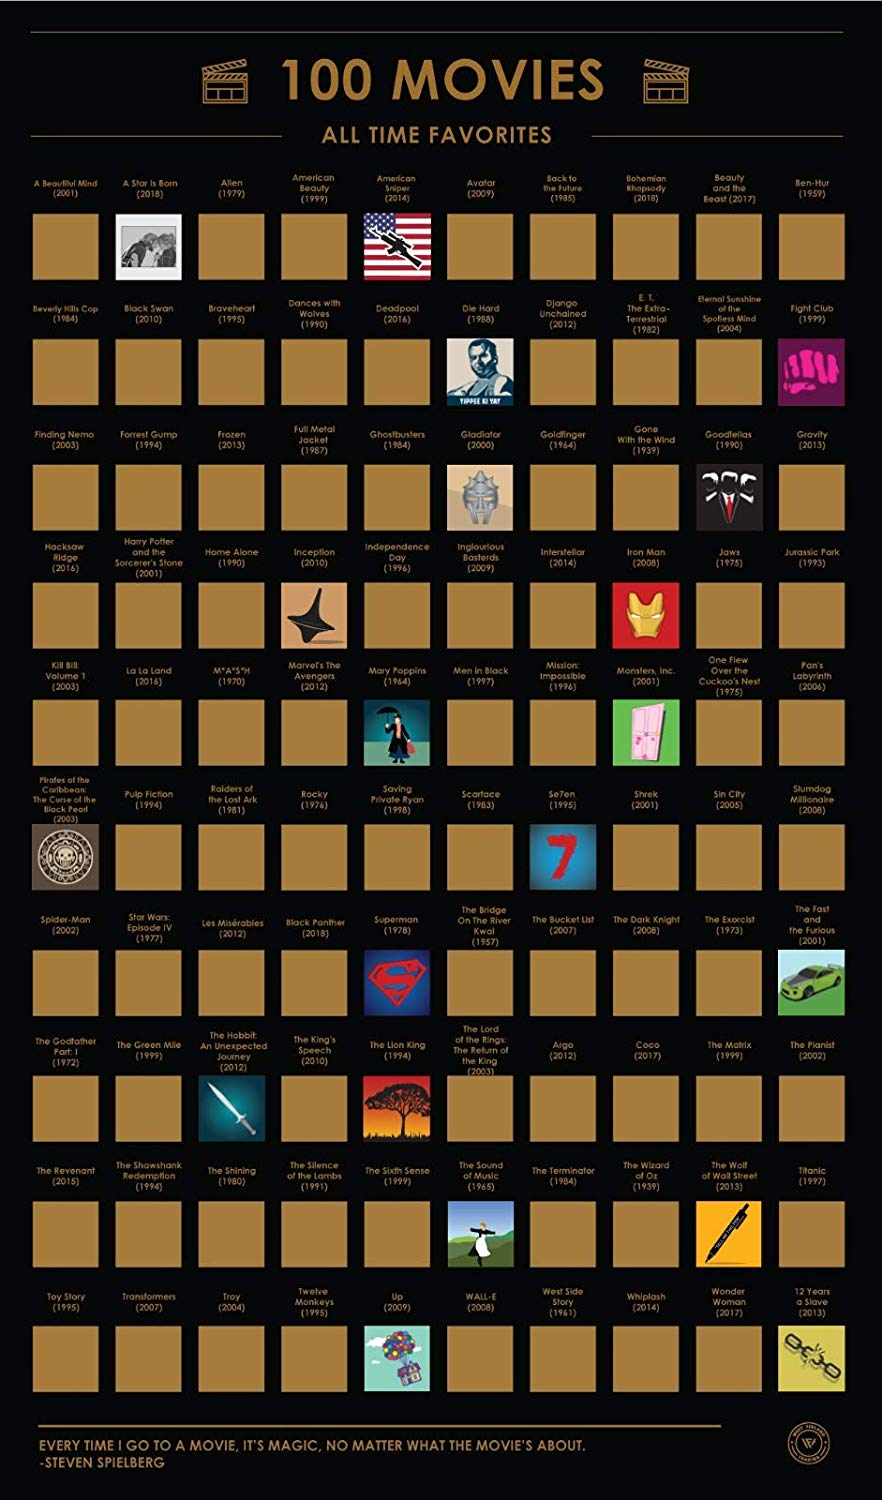 100 Movies Scratch Off Poster 100 Must-See Movies Top Films of All Time Bucket List (16.5